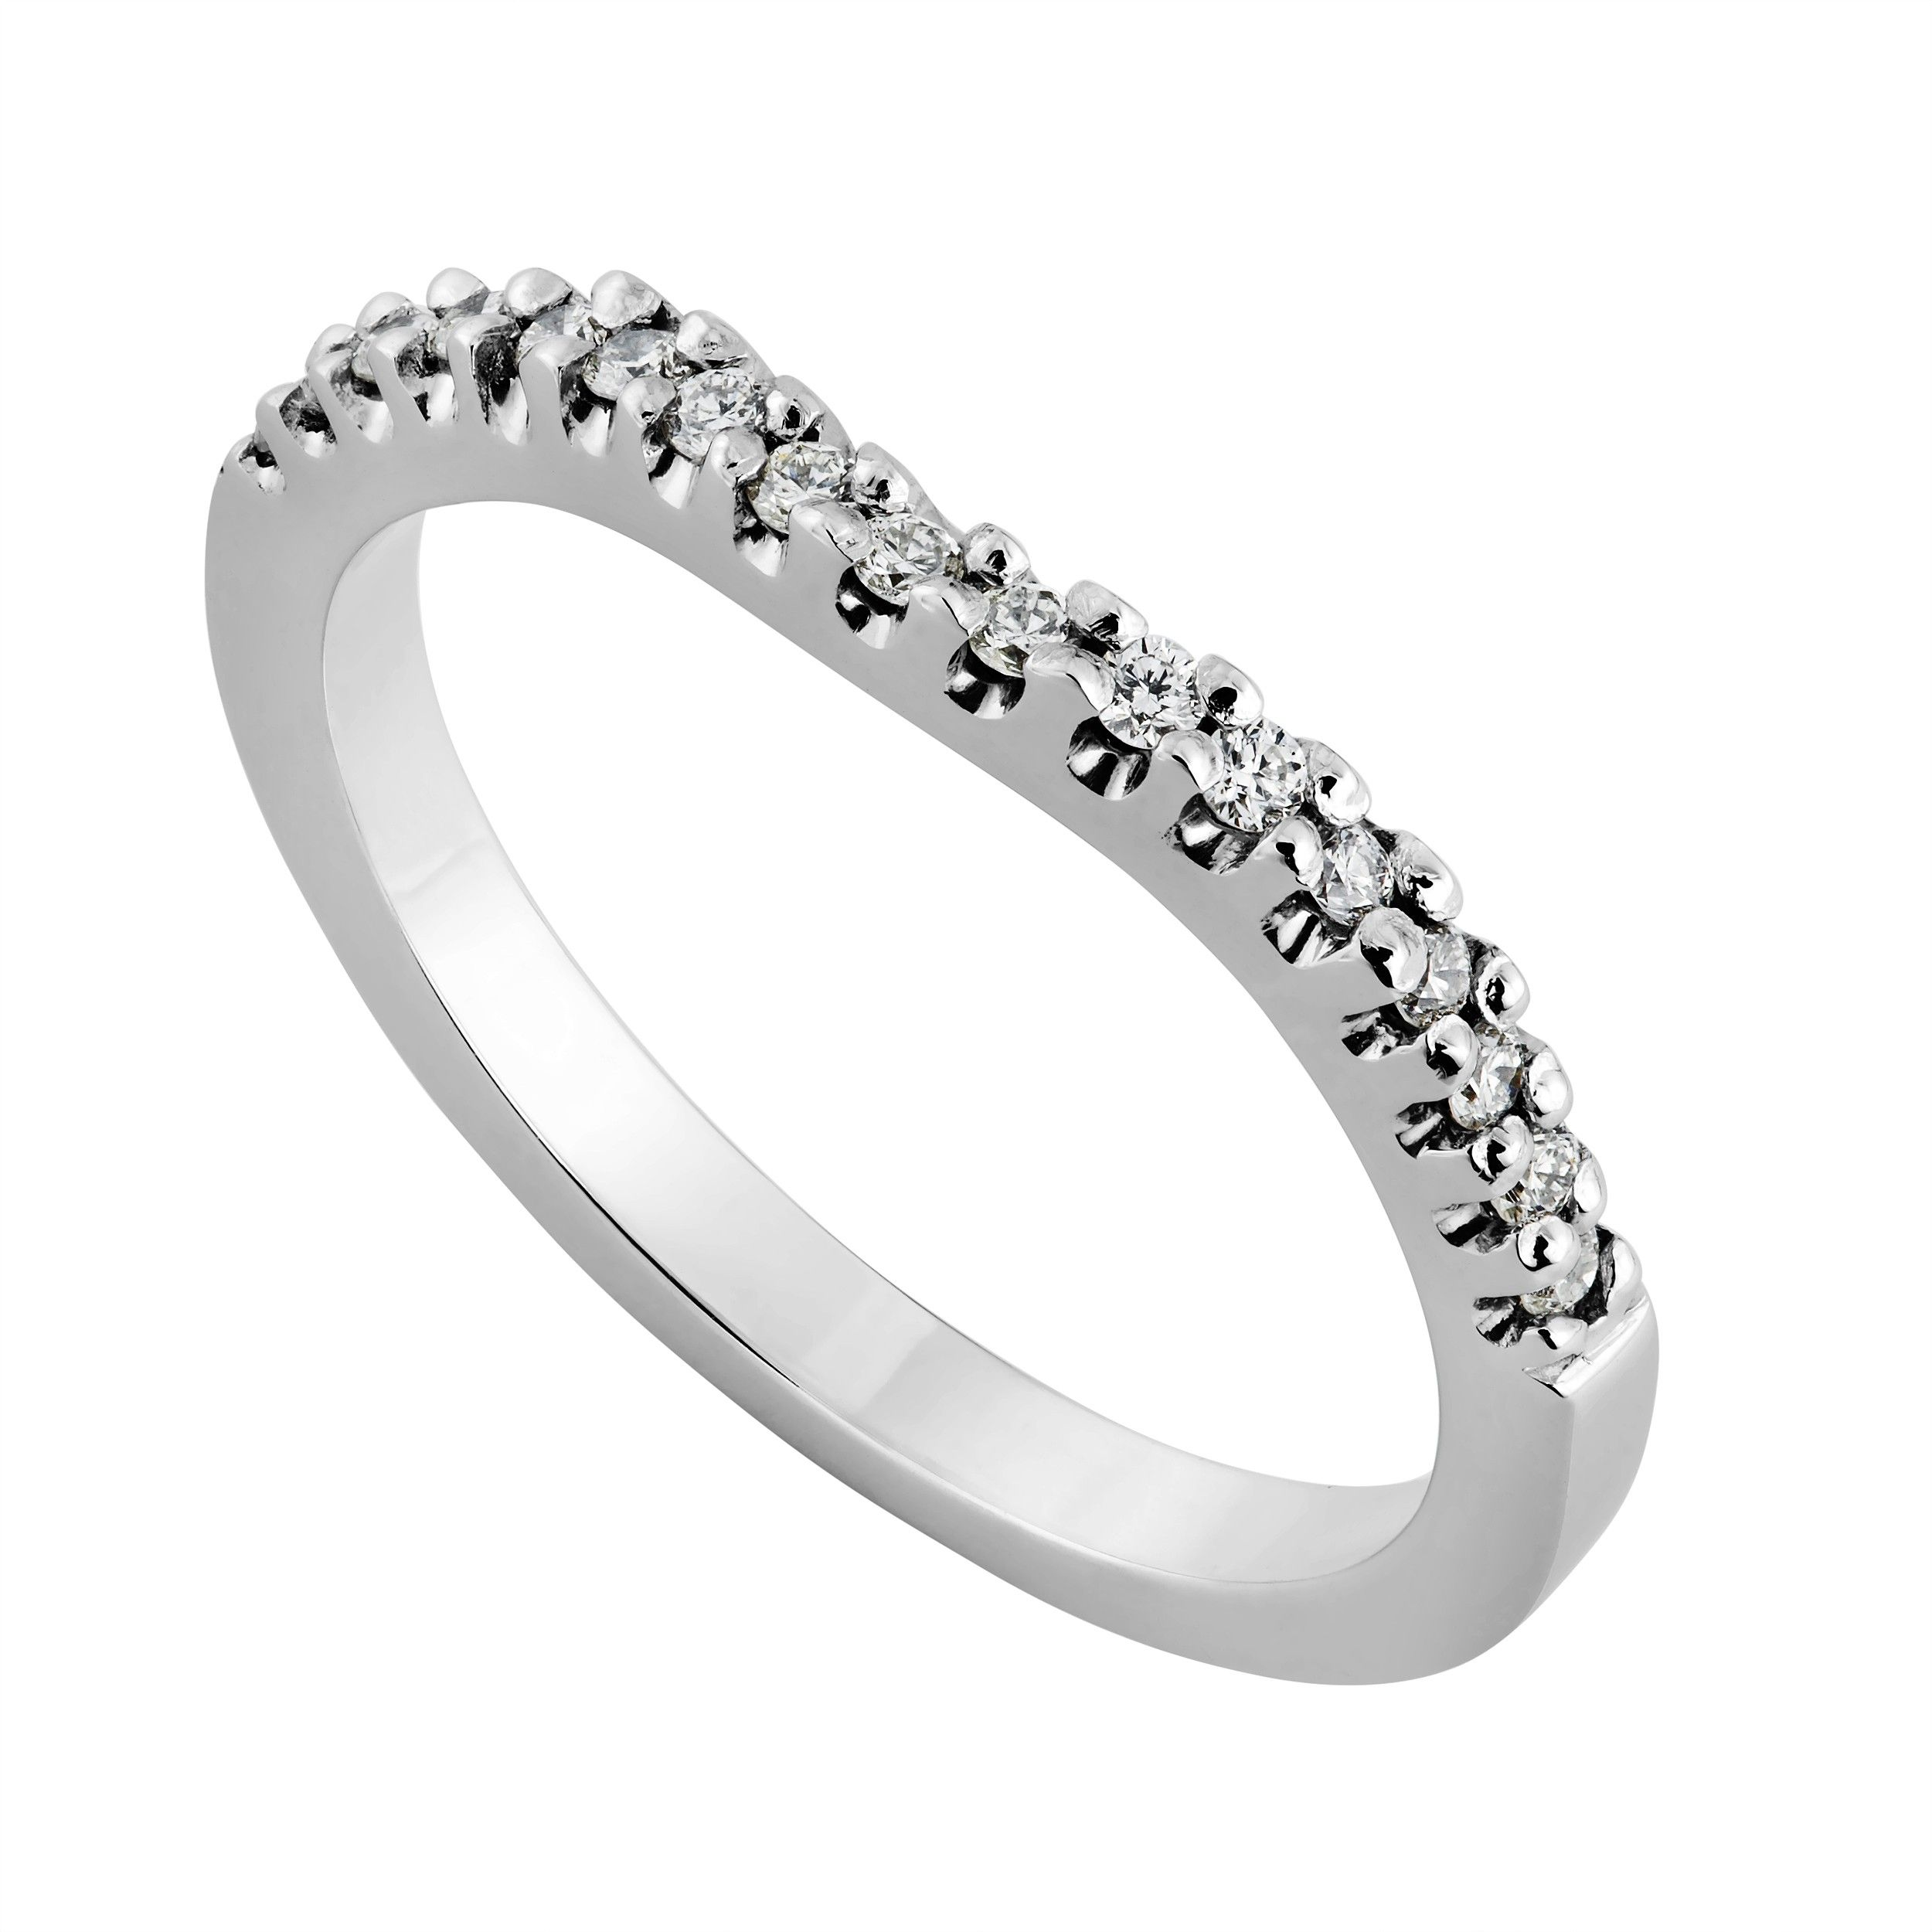 Ladies White Gold Carat Diamond Shaped Wedding Ring From Fraser Hart Jewellers